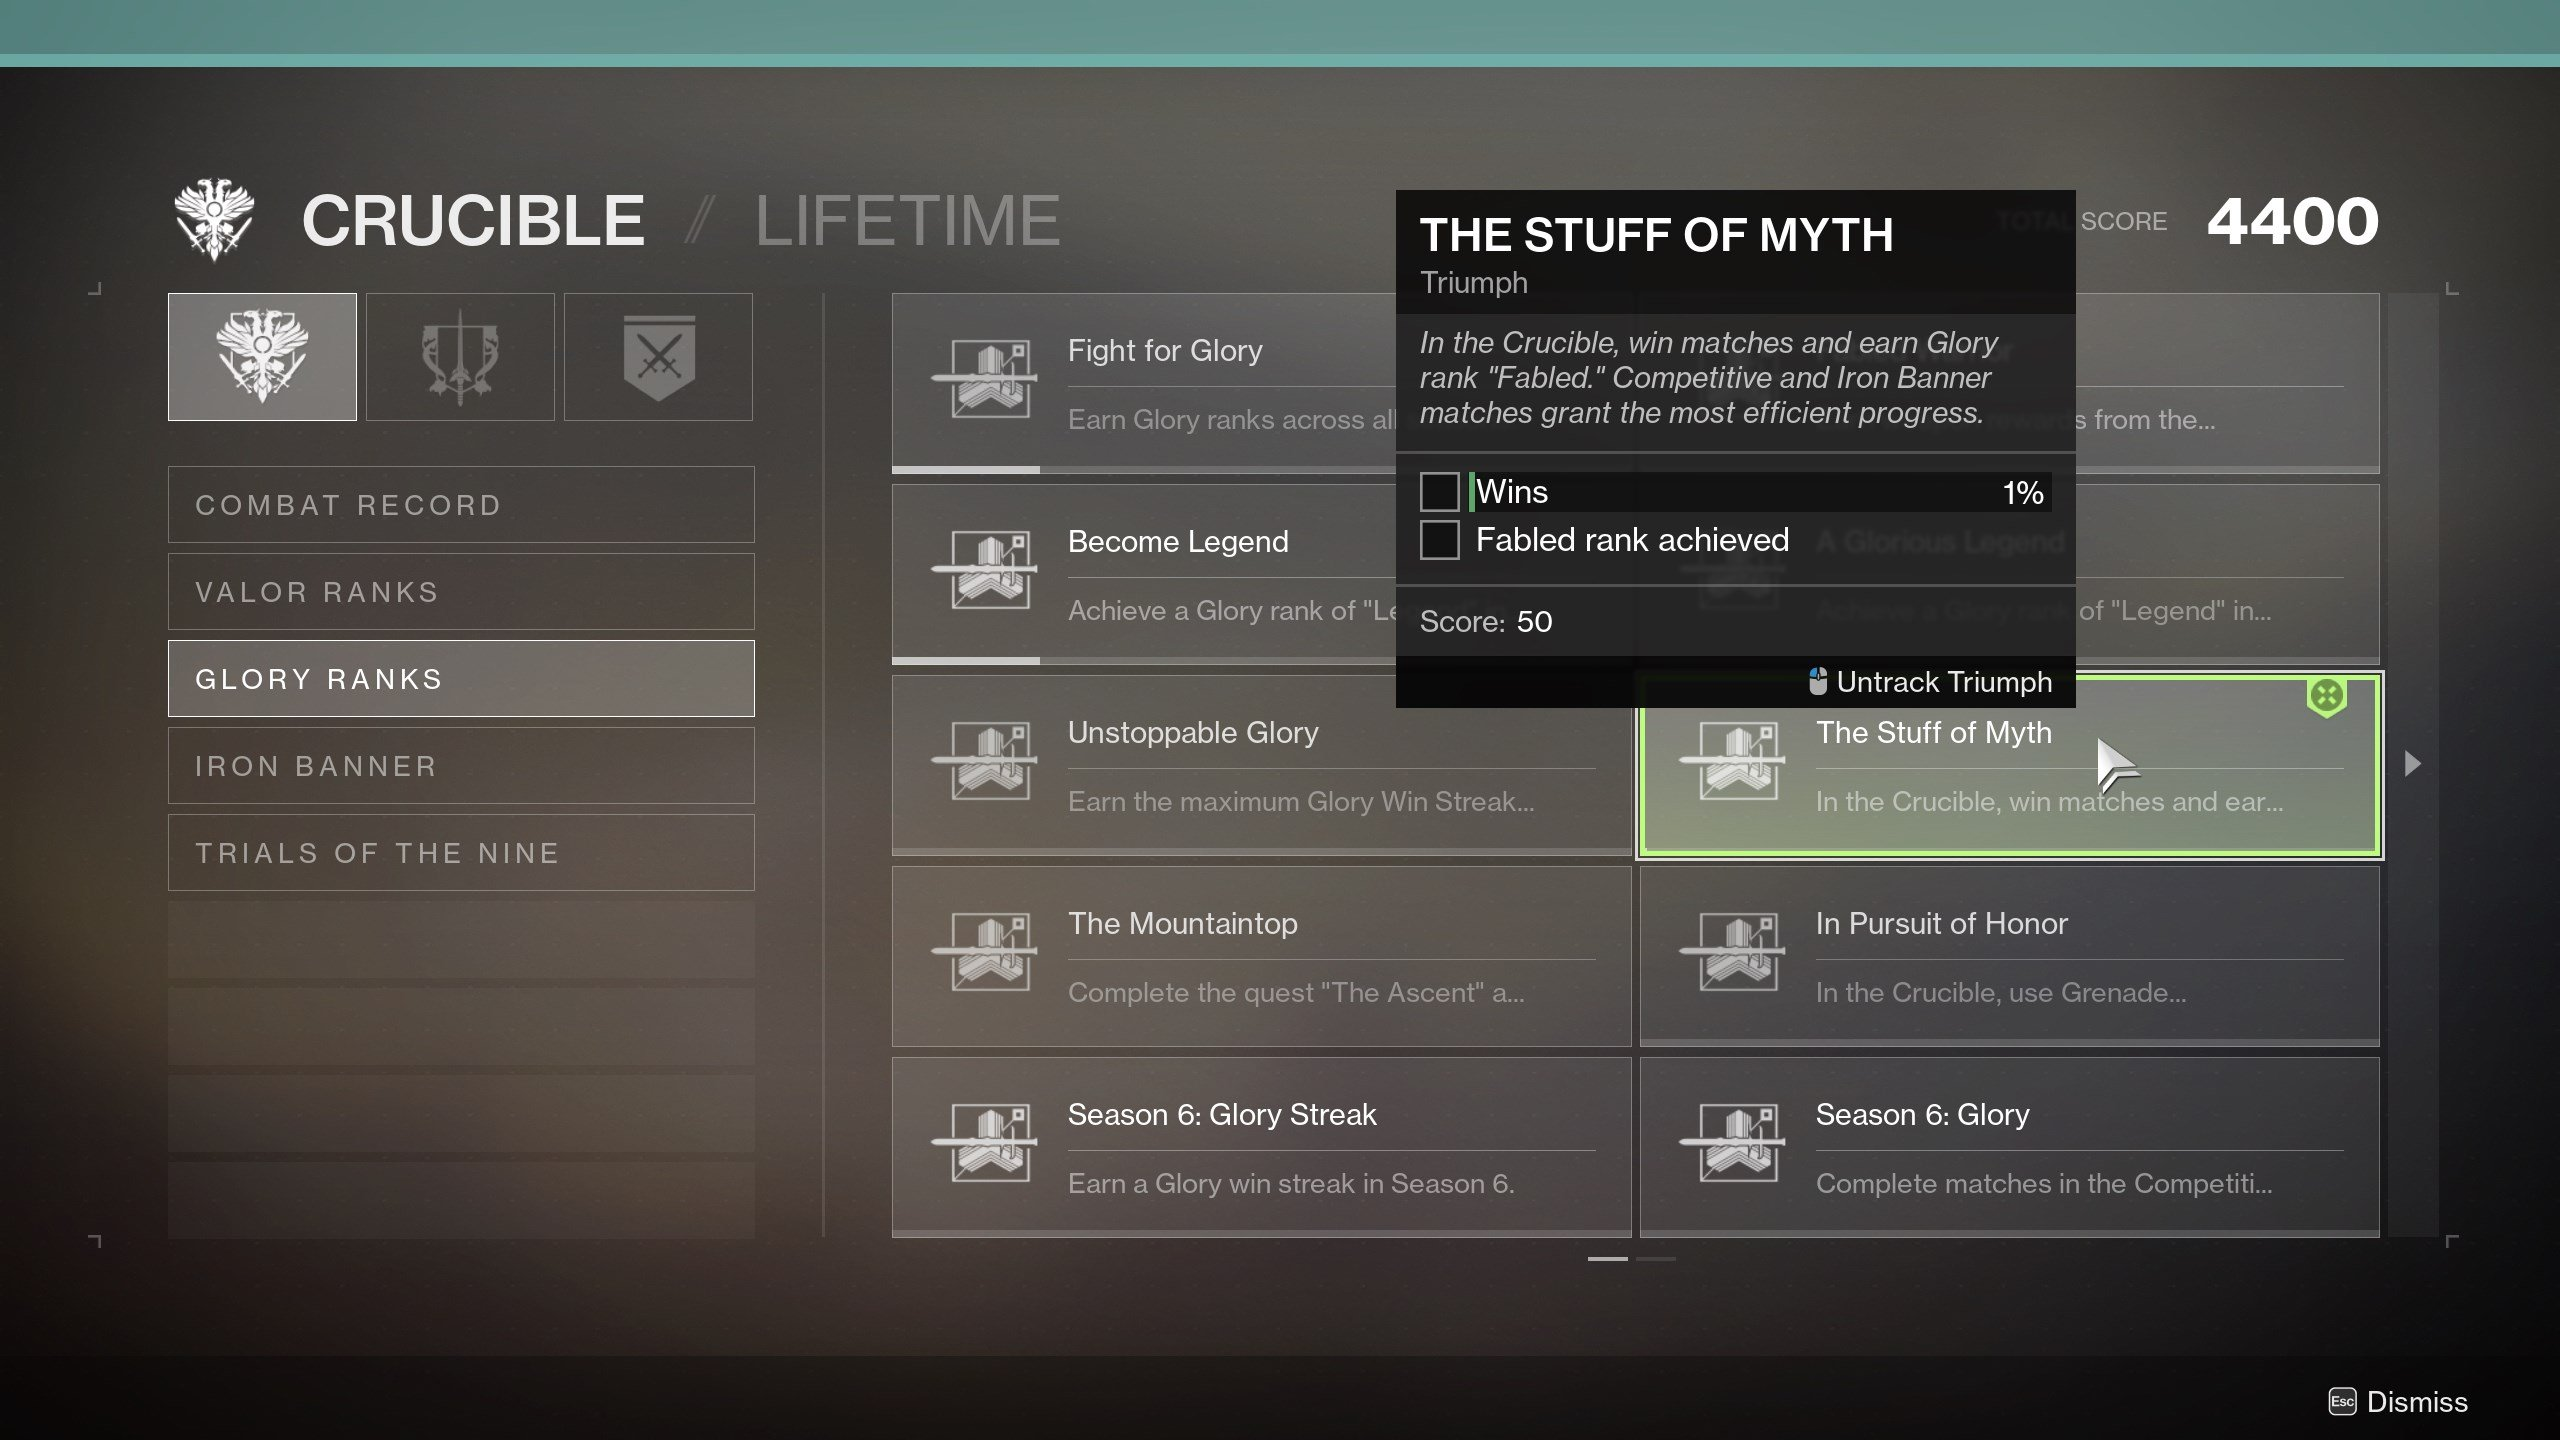 Destiny 2 Stuff of Myth Triumph requirements